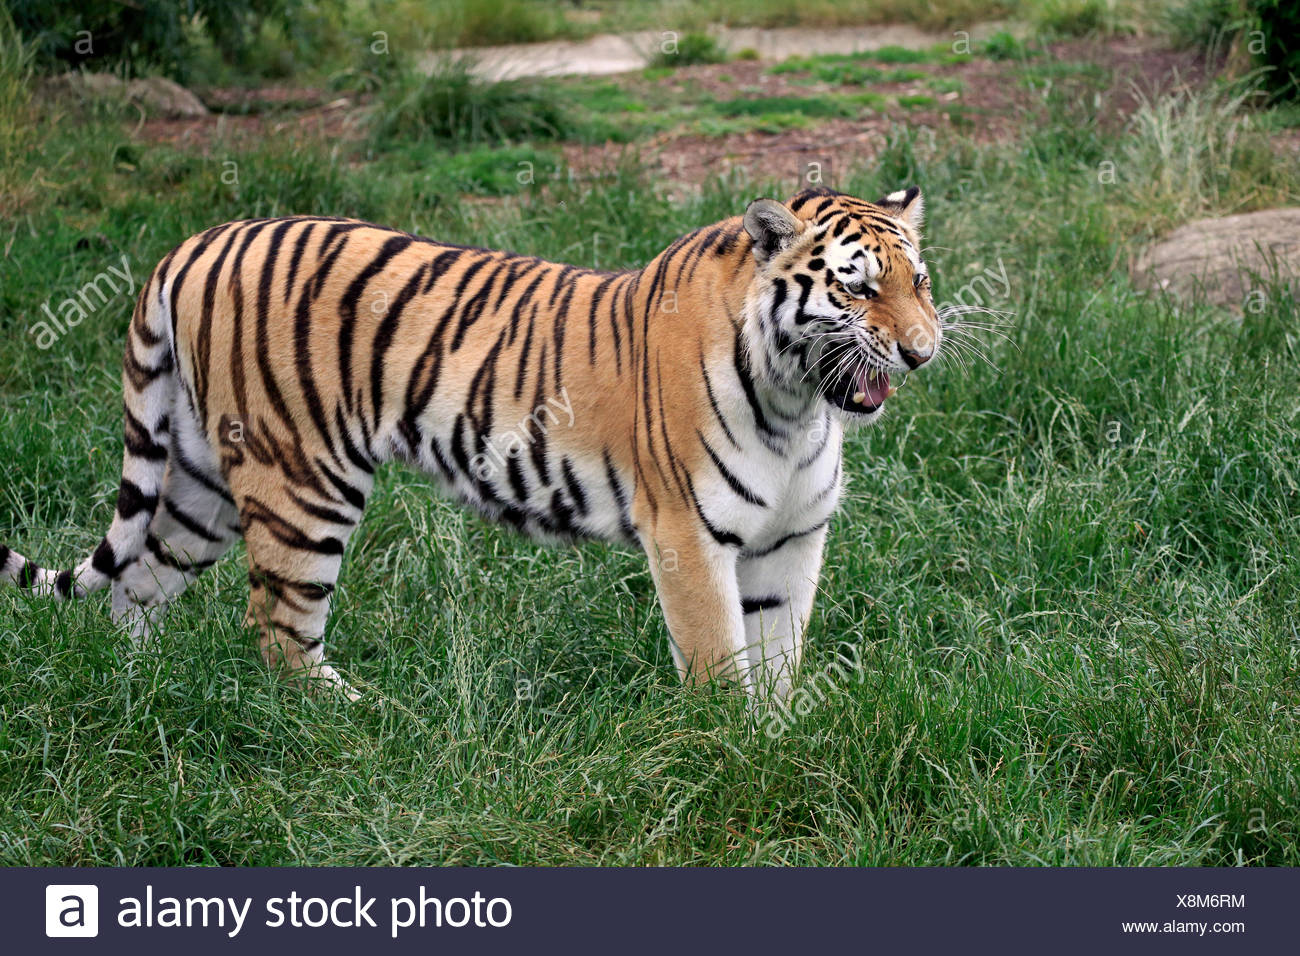 Siberian Tiger (Panthera tigris altaica), adult, snarling, native to Asia, captive, England, United Kingdom - Stock Image